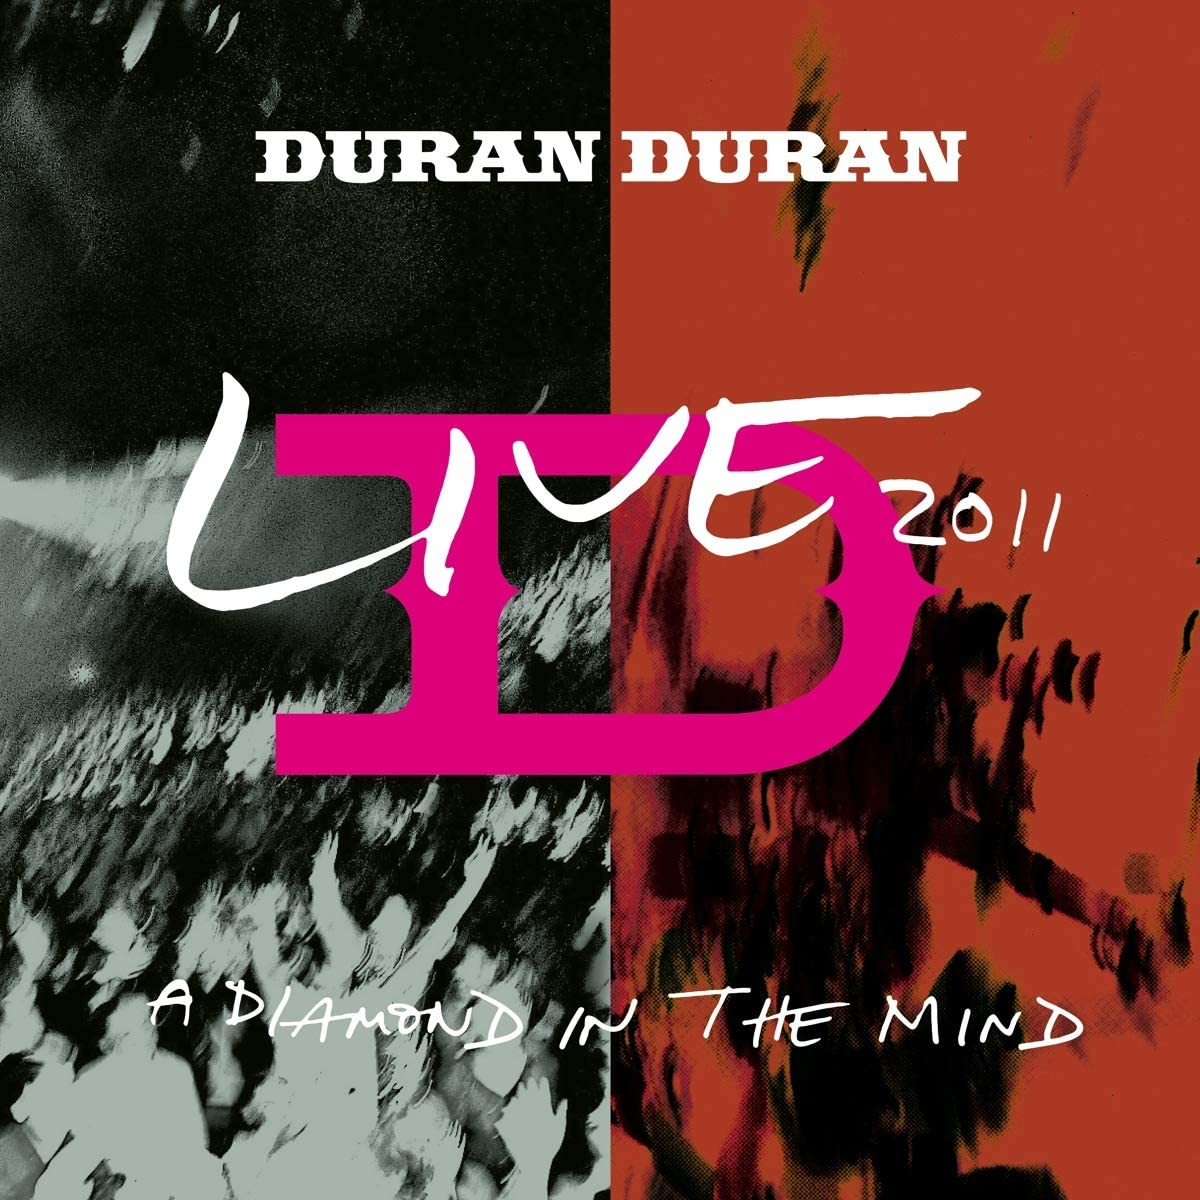 Copertina Vinile 33 giri A Diamond in the Mind [2 LP] di Duran Duran